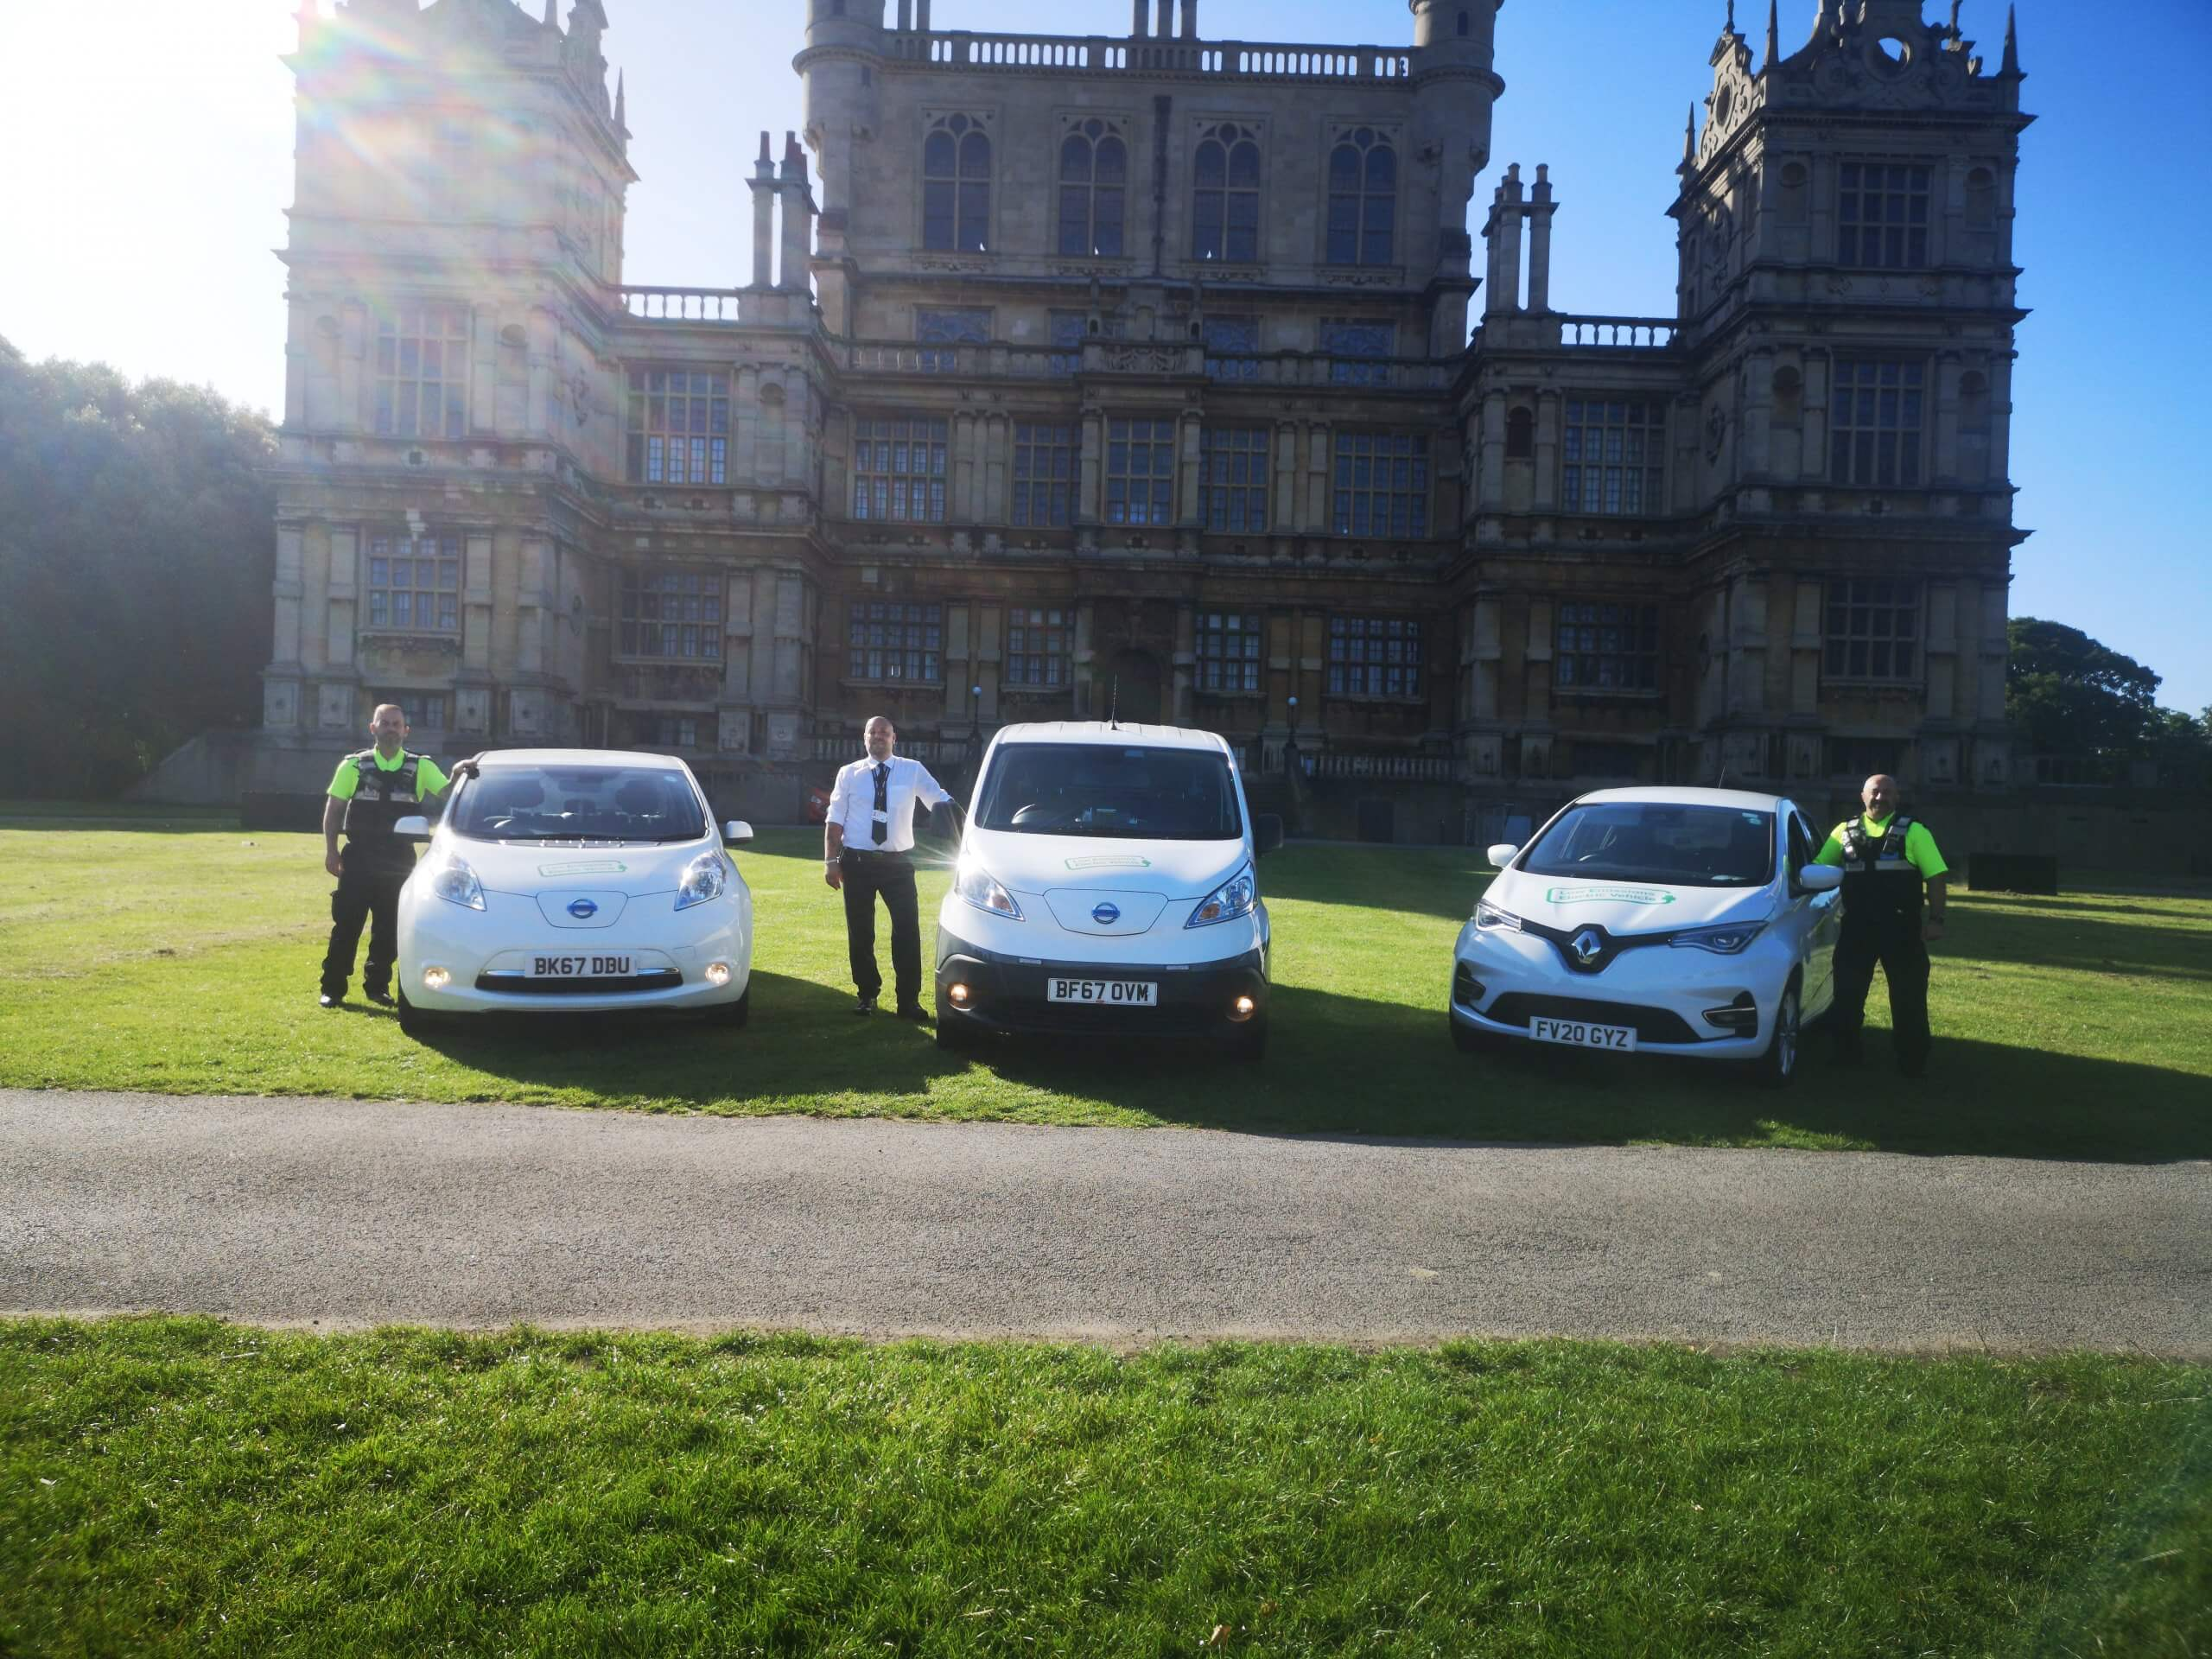 Three members of REACT with their electric vehicles